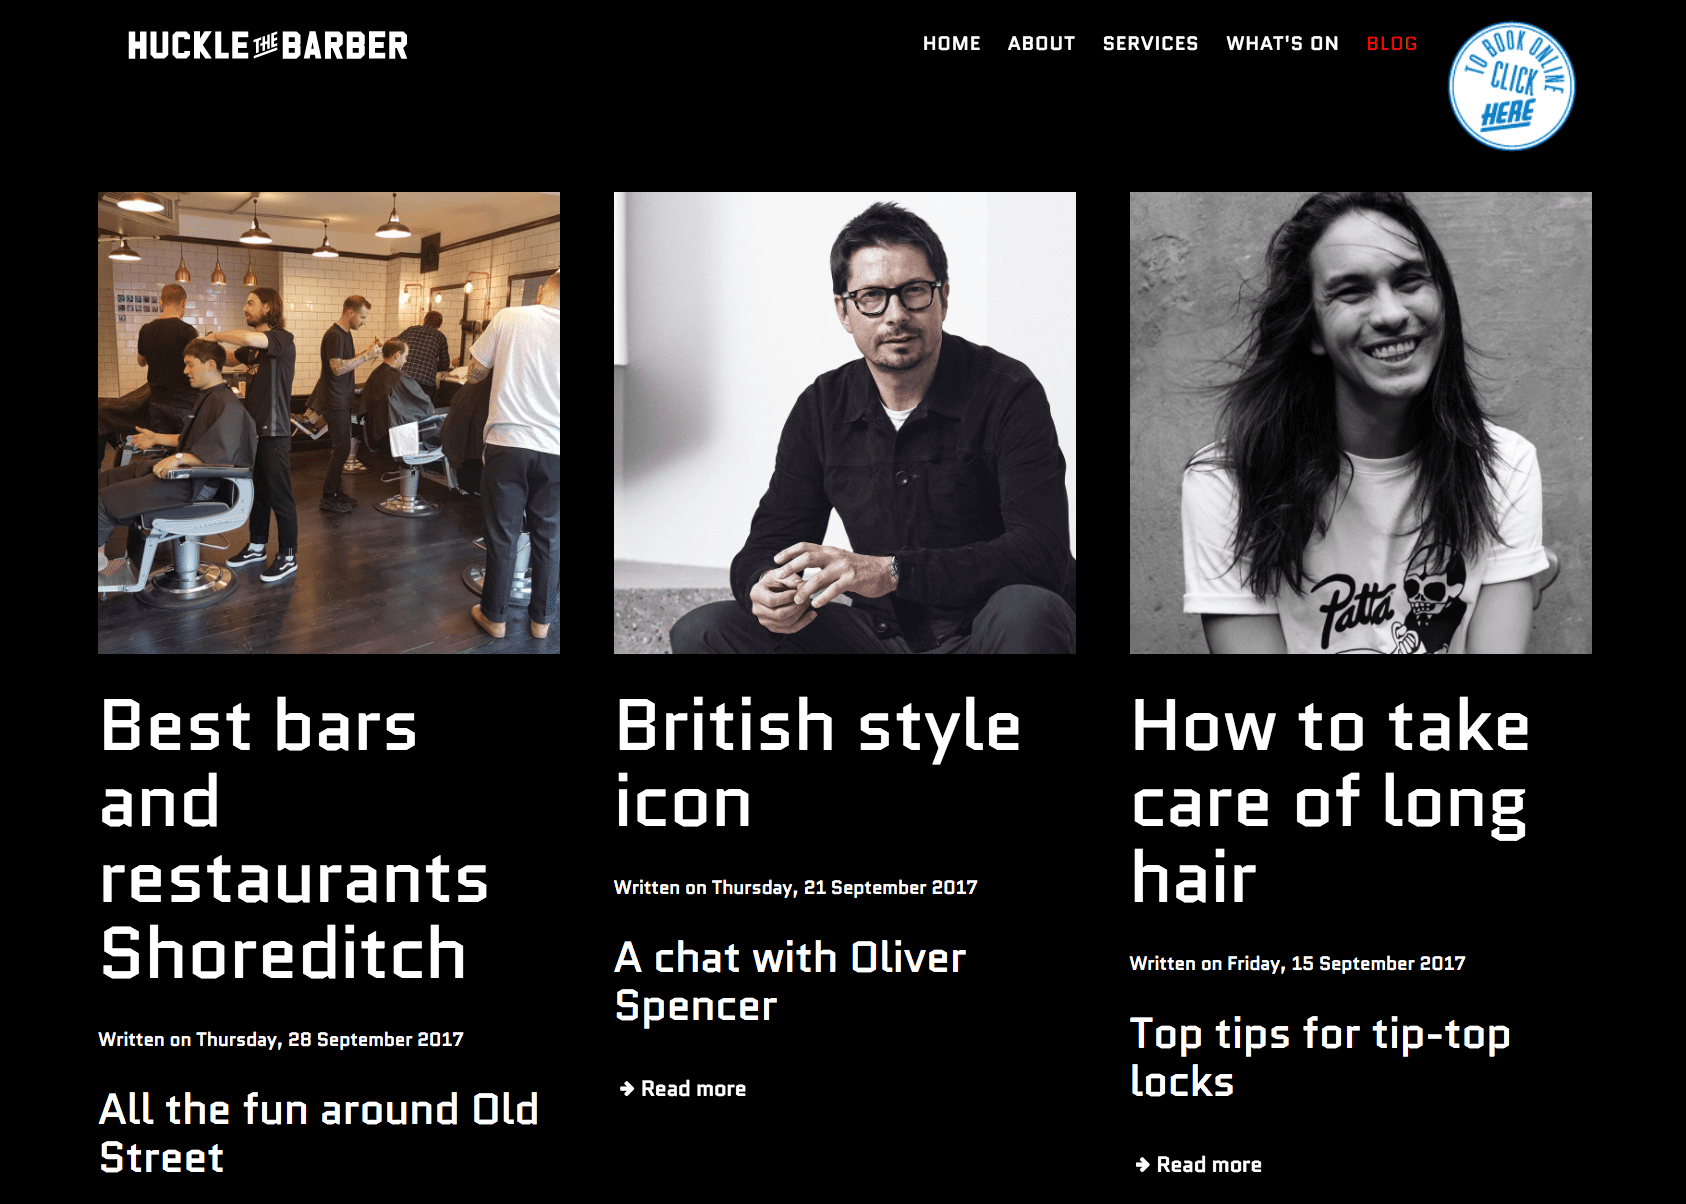 Screen Shot 2017 09 29 at 15.28.17 - Huckle the Barber Blog